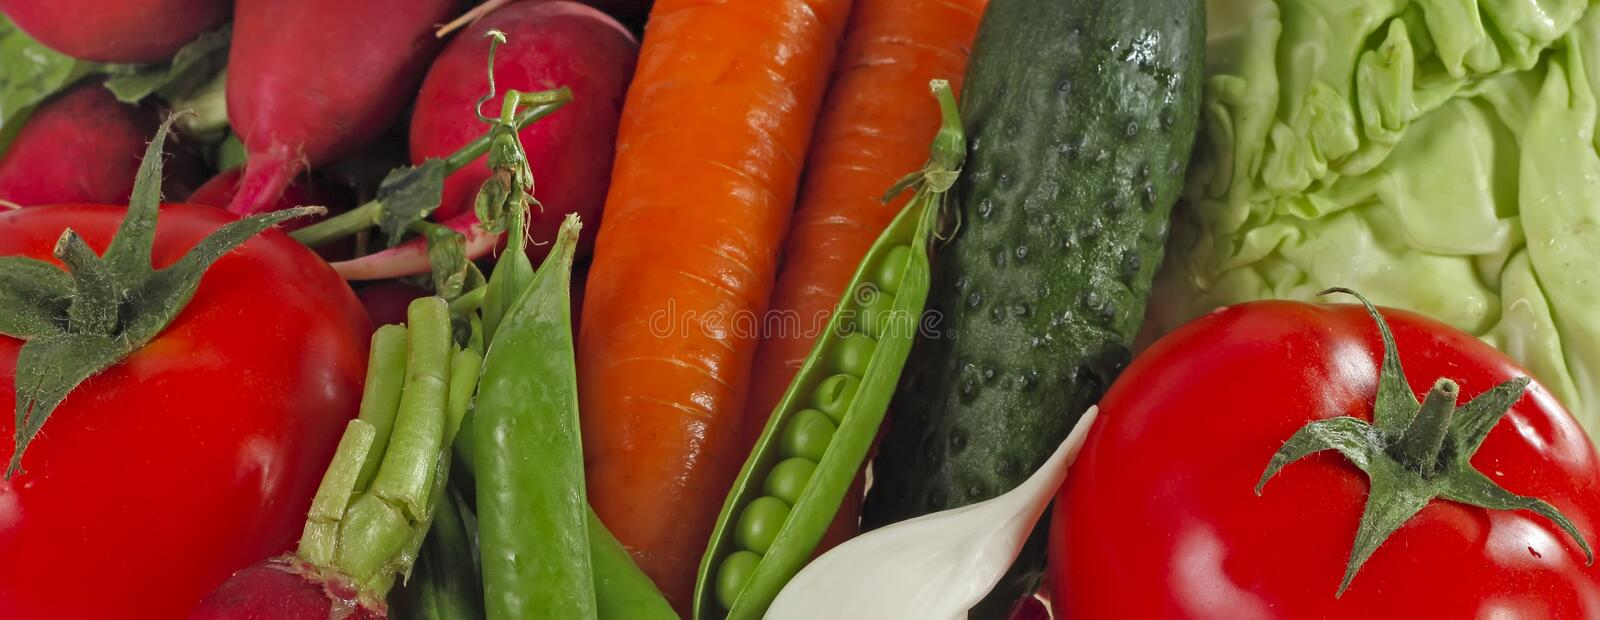 Different raw vegetables background.Healthy eating. royalty free stock photos